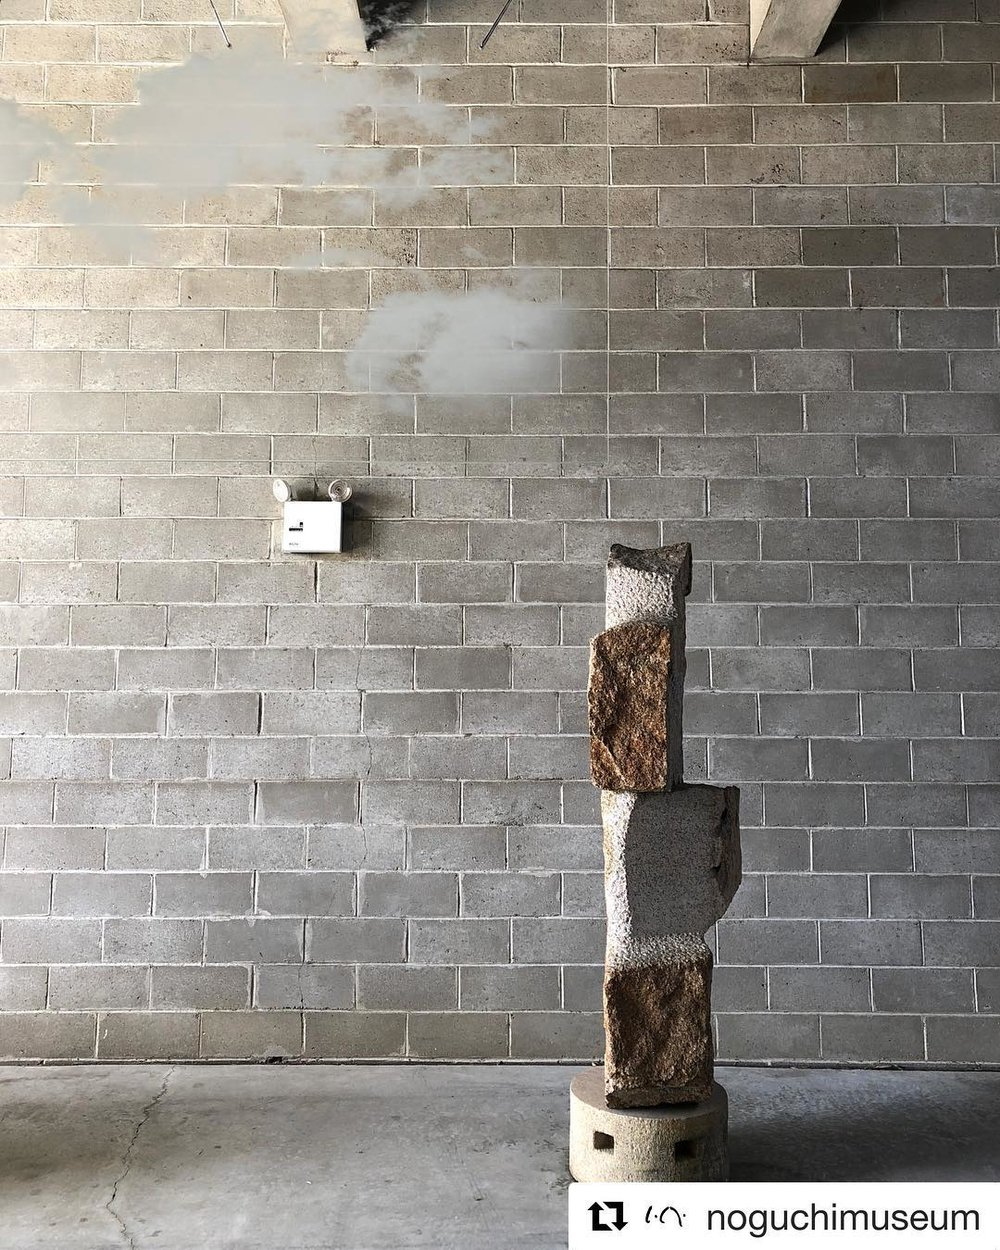 "#Repost @noguchimuseum ・・・ Forecast: #CLOUDS. Two enigmatic works by @studiomiyaando are now abiding in the indoor-outdoor galleries through August 19. Members' reception tonight from 6-8 pm, perfect for sky gazing. ☁️ Join us as a member at noguchi.org/membership. — [#MiyaAndo, 'Haku-un (White Cloud) 4.8.1,' 2017, etched glass. #IsamuNoguchi, 'Awa Odori,' 1982, Mannari granite.] #MiyaAndoClouds #sculpture   http://www.noguchi.org/programs/exhibitions/miya-ando-clouds   Miya Ando: Clouds  Wednesday, April 25, 2018 - Sunday, August 19, 2018     The Noguchi Museum presents  Miya Ando: Clouds , an installation of two site-specific sculptures in the Museum's indoor-outdoor gallery. The works, suspended plate-glass sculptures internally etched with images of clouds, share Isamu Noguchi's interest in sculpting ephemeral materials, and in using them to shape space.  Raised in a Buddhist temple by the sea in Okayama, Japan, and on 25-acres of redwood forest in coastal Northern California, artist Miya Ando has always been drawn to the immaterial quality of fog and clouds. She began creating images of clouds in glass cubes and slabs in 2011. Pushing the limits of commercial laser etching technology from the outset, she started small. By collaborating with a highly specialized factory, she has been able to gradually enlarge them. The two examples for the Museum, the first she has decided to hang— Haku-Un (White Cloud) 4.8.1 , the largest to date, and  Haku-Un (White Cloud) 3.3.1 —take the work in a new, more environmental direction.  The pairing of her clouds with Noguchi's large basalt sculptures was inspired by a Japanese  zengo  (or Zen phrase): ""Blue mountain does not move. White cloud comes and goes naturally."" Although the etched image of clouds in the glass is static, the surface of the glass seems to move, as it mirrors changes in the environment. Meanwhile, the clouds shift in and out of sight as viewers walk around them. Seeming to expand and collapse in the charged landscape of the Museum's indoor-outdoor gallery (Area 1), they are a conceptual and perceptual analogue for Noguchi's collapsible Akari light sculptures—the subject of the Museum's current exhibition   Akari: Sculpture by Other Means .   About Miya Ando  Miya Ando is based in New York City and Los Angeles. Her work has been the subject of international solo exhibitions including at SCAD (Savannah College of Art and Design), Savannah, GA; Shibuya Seibu, Tokyo, Japan; Sundaram Tagore Gallery, New York, NY; and Lesley Kehoe Galleries, Melbourne, Australia. Her art has also been included in group exhibitions at institutions including the Los Angeles County Museum of Art (LACMA), CA; San Jose Museum of Art, CA; Bronx Museum, New York, NY; and Queens Museum of Art, New York, NY. Her work is included in the collections of LACMA and the Detroit Institute of Arts, MI, as well as in numerous private collections. Ando has been the recipient of numerous grants and awards, including the Pollock-Krasner Foundation Grant Award and Commission for The Philip Johnson Glass House, New Canaan, CT.   Miya Ando: Clouds  is supported, in part, by public funds from the New York City Department of Cultural Affairs in partnership with the City Council, and by the New York State Council on the Arts with the support of Governor Andrew M. Cuomo and the New York State Legislature."